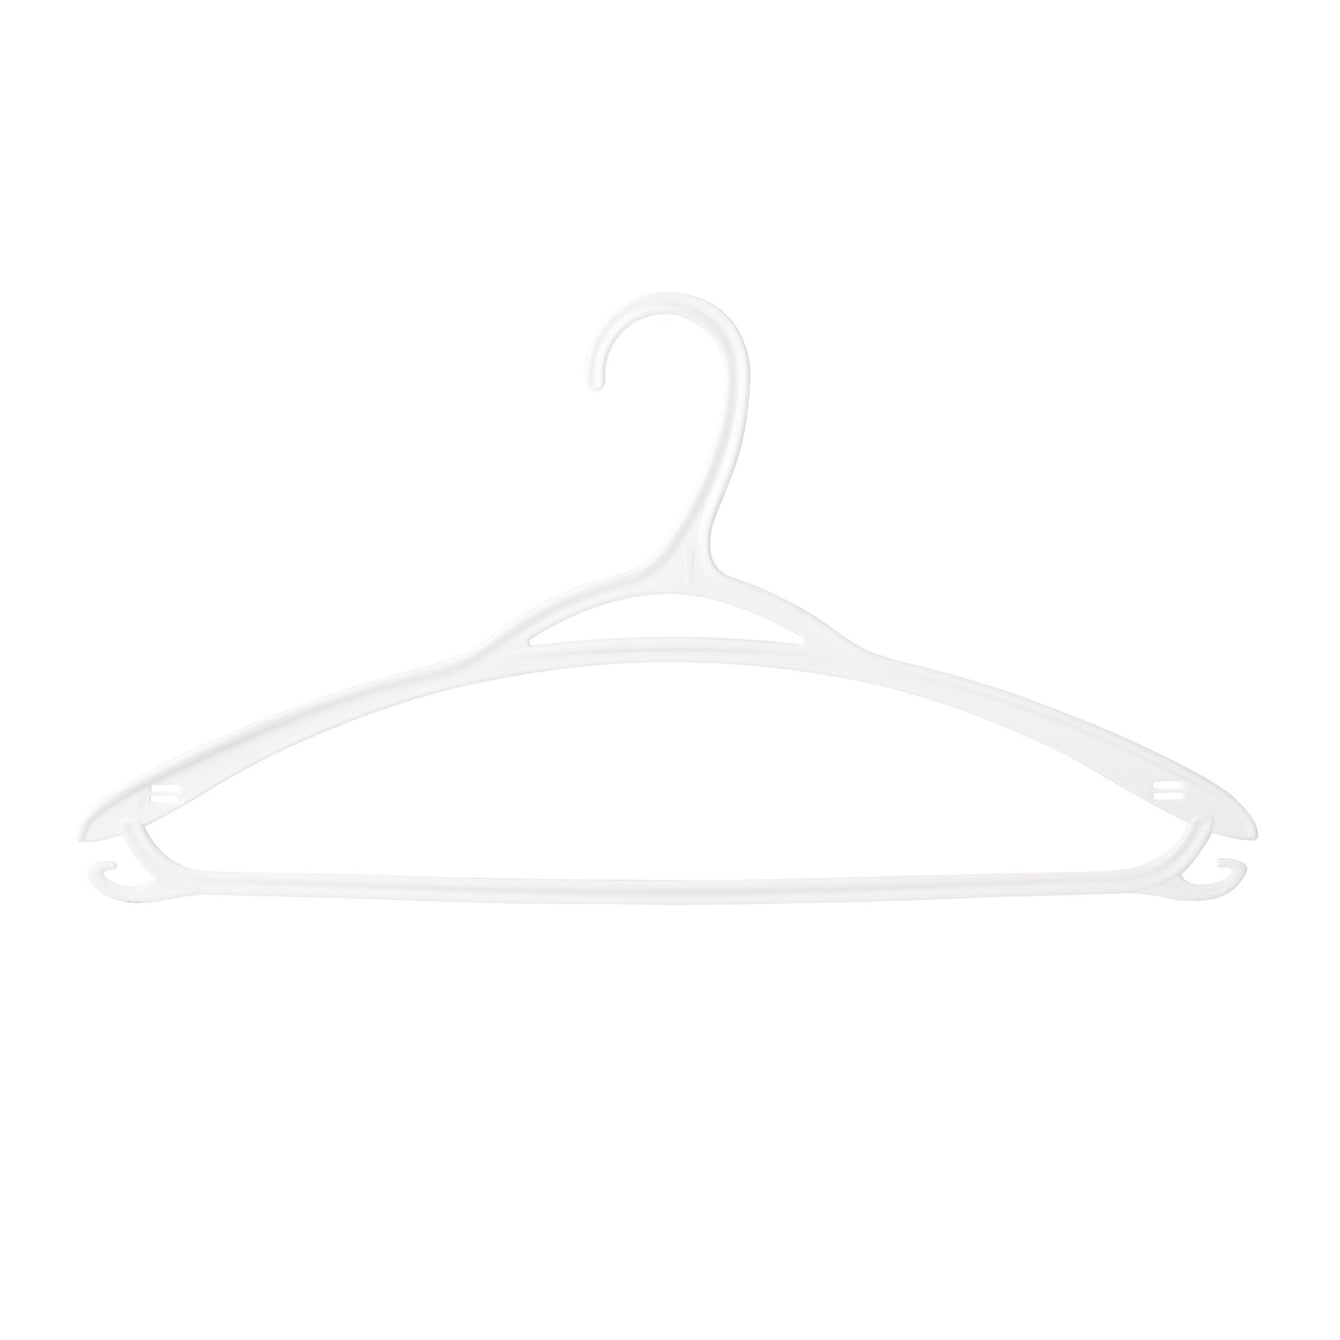 10 Pack Plastic Swan Clothes Hanger - Style 2205